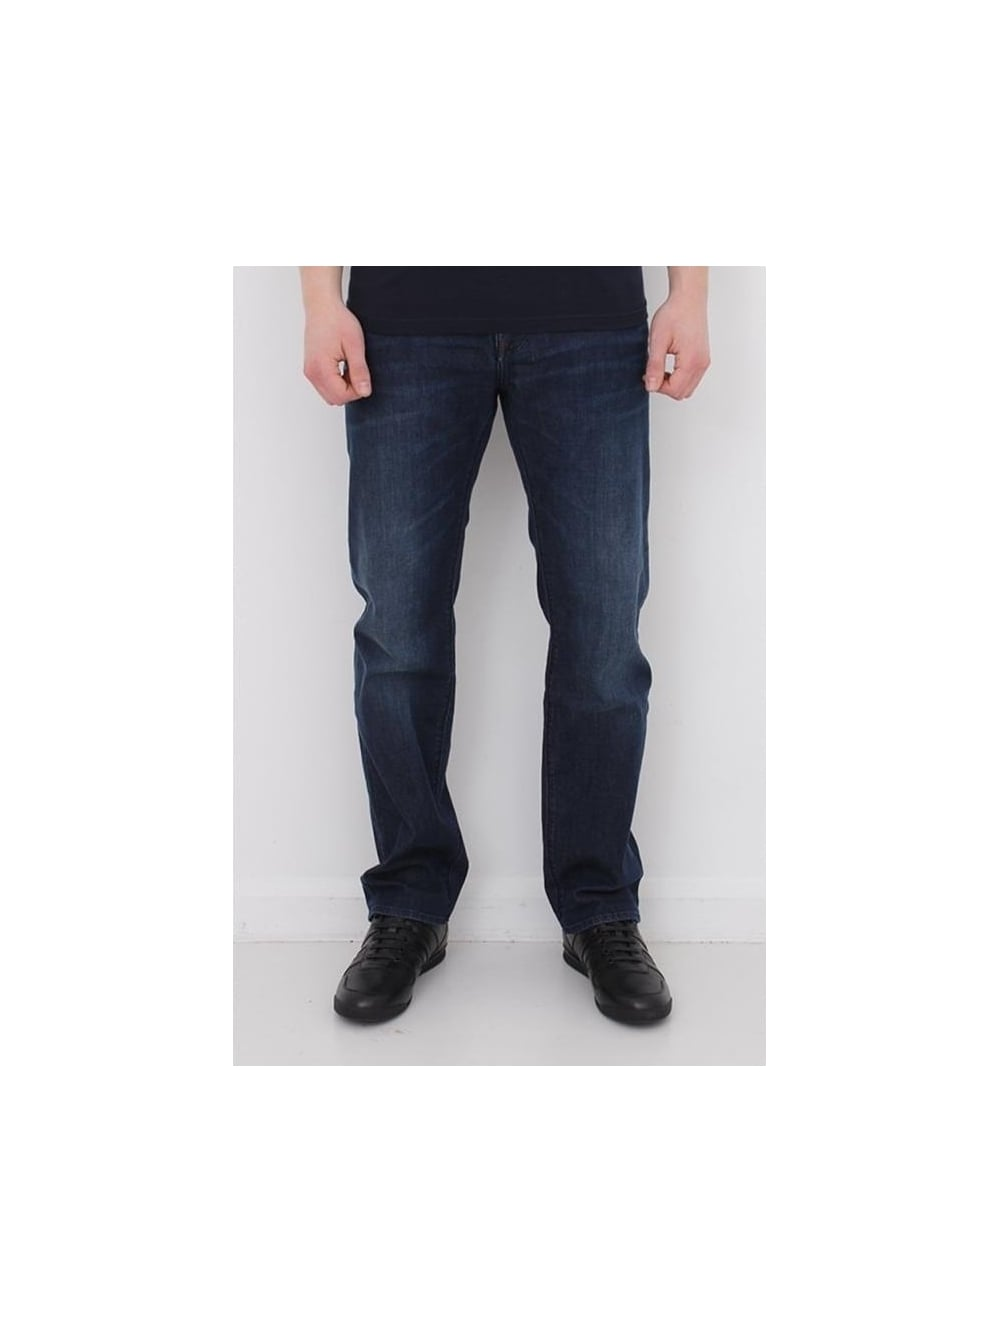 d8daad21 HUGO BOSS BOSS Green C-Maine 1 Regular Fit Jeans in Navy - Northern ...